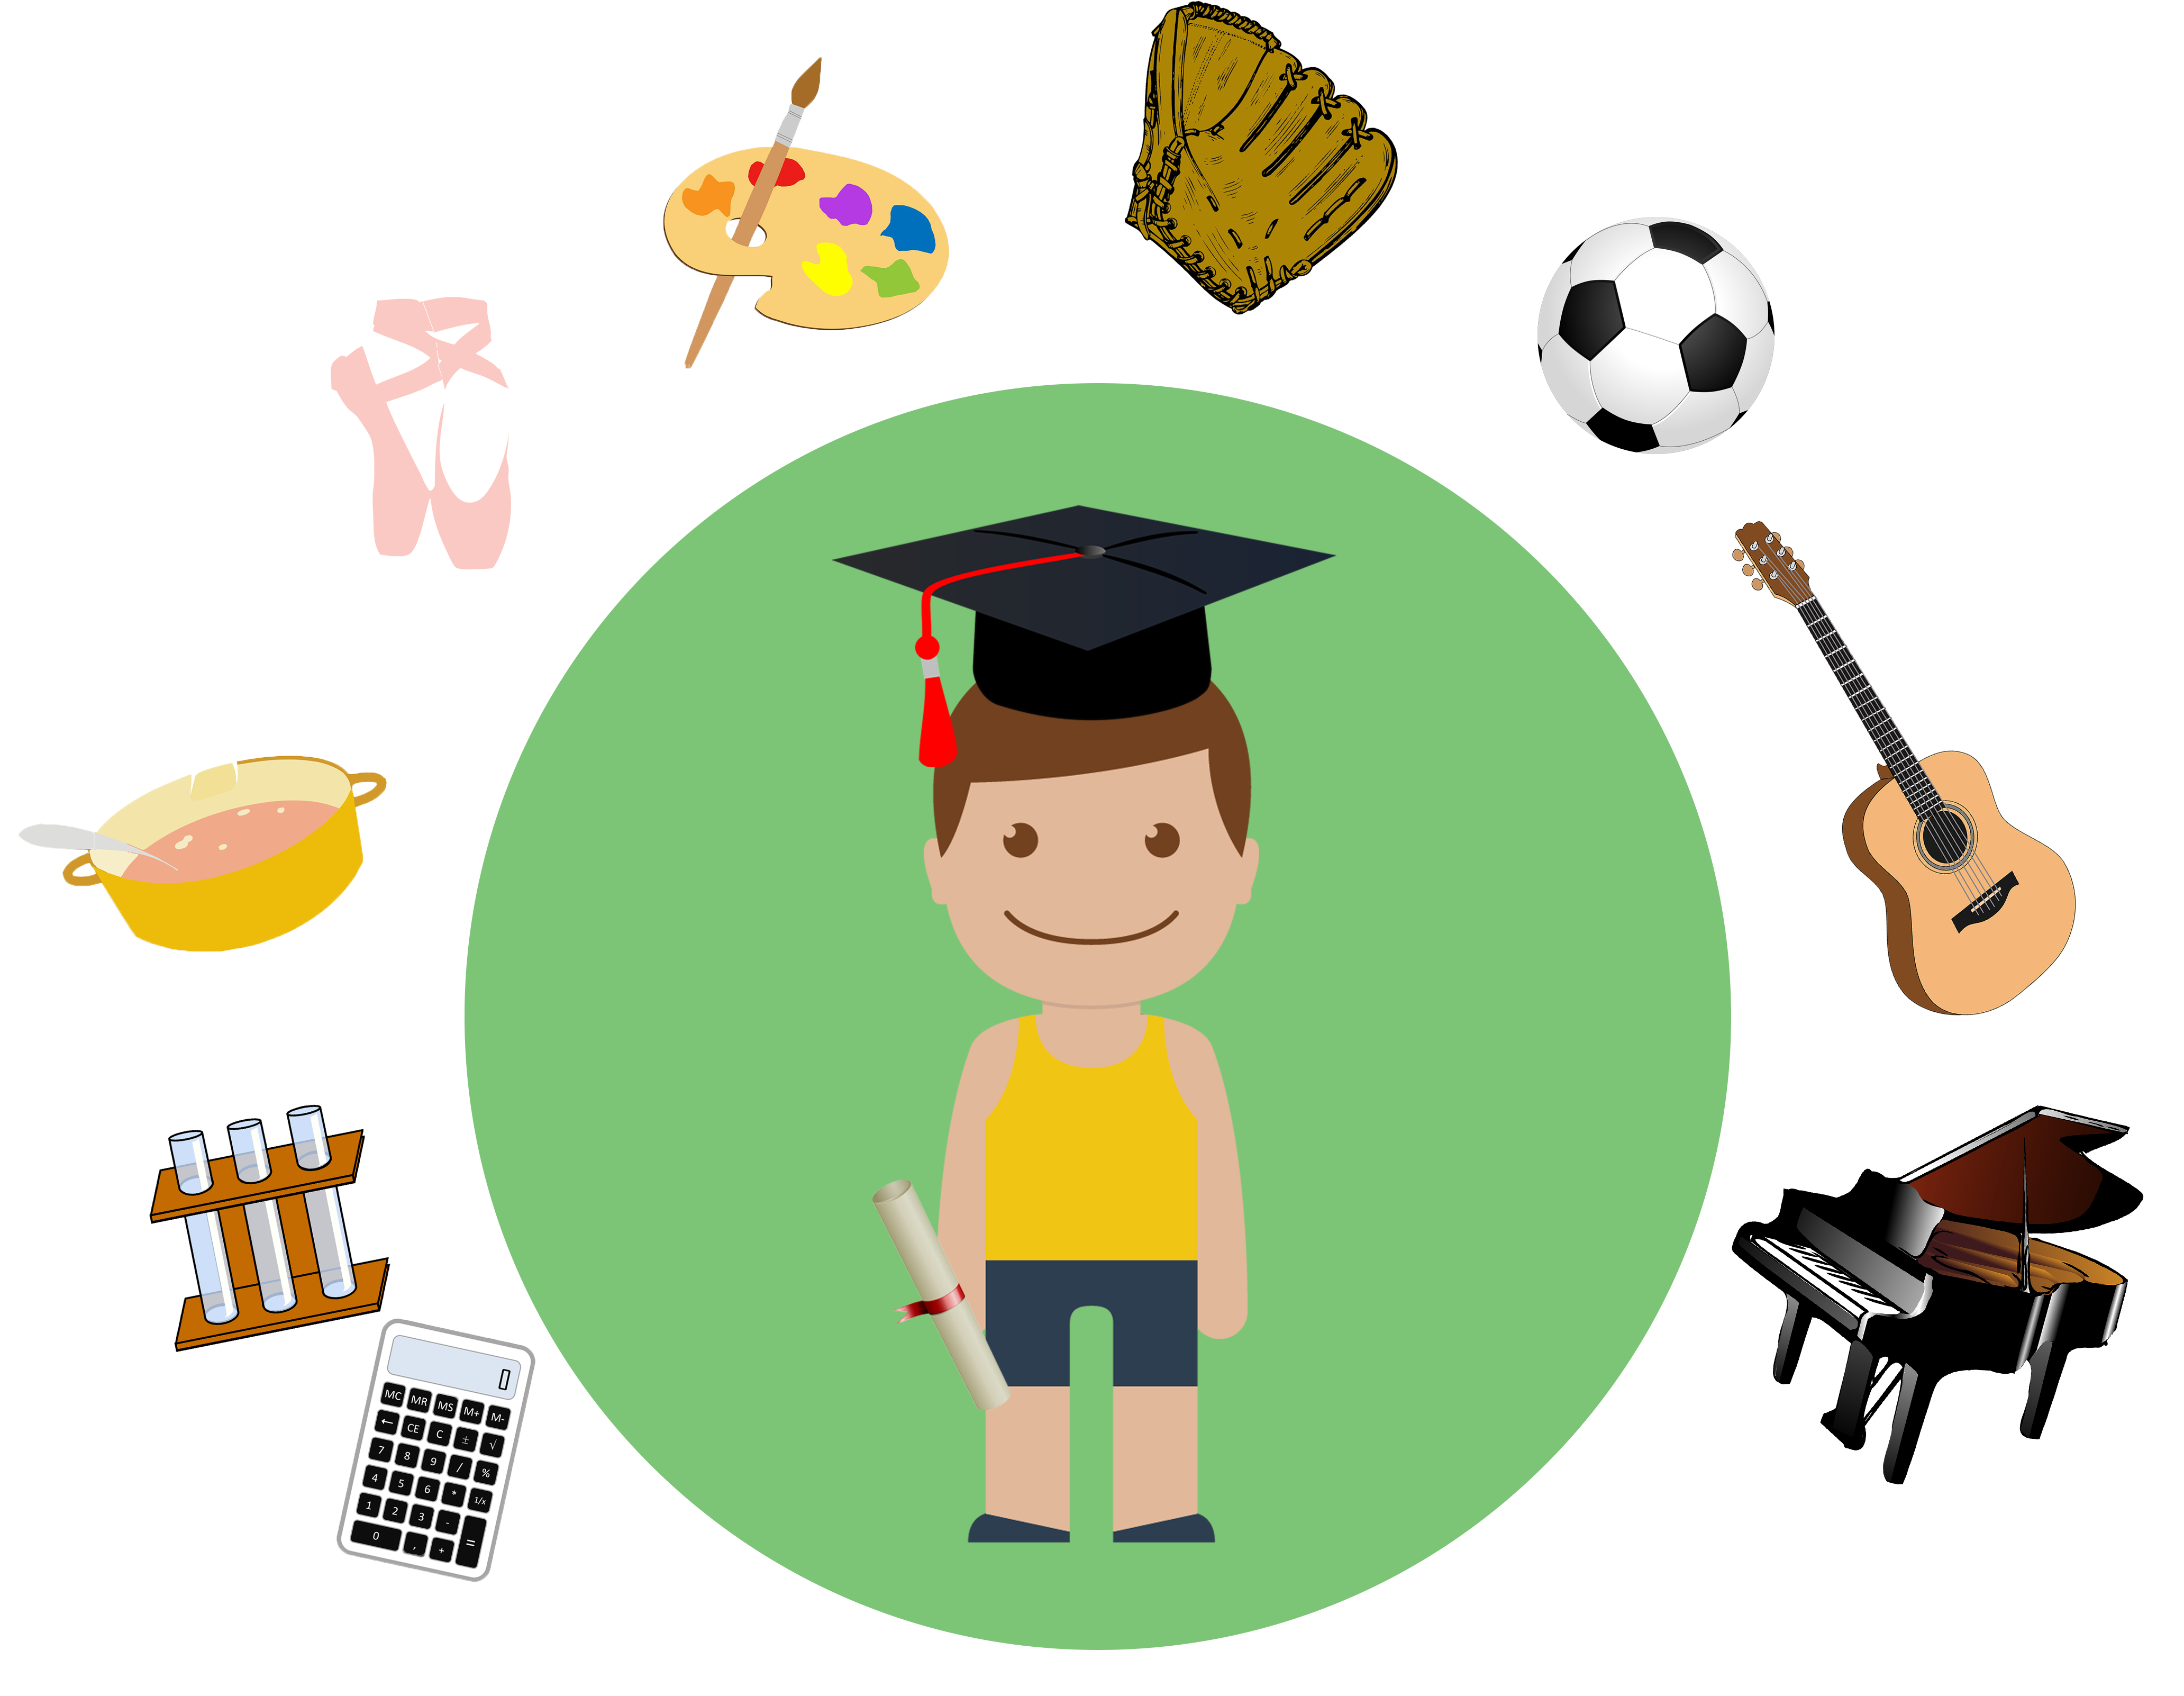 School activities clipart clip freeuse download 28+ Collection of Extra Curricular Activities Clipart | High quality ... clip freeuse download